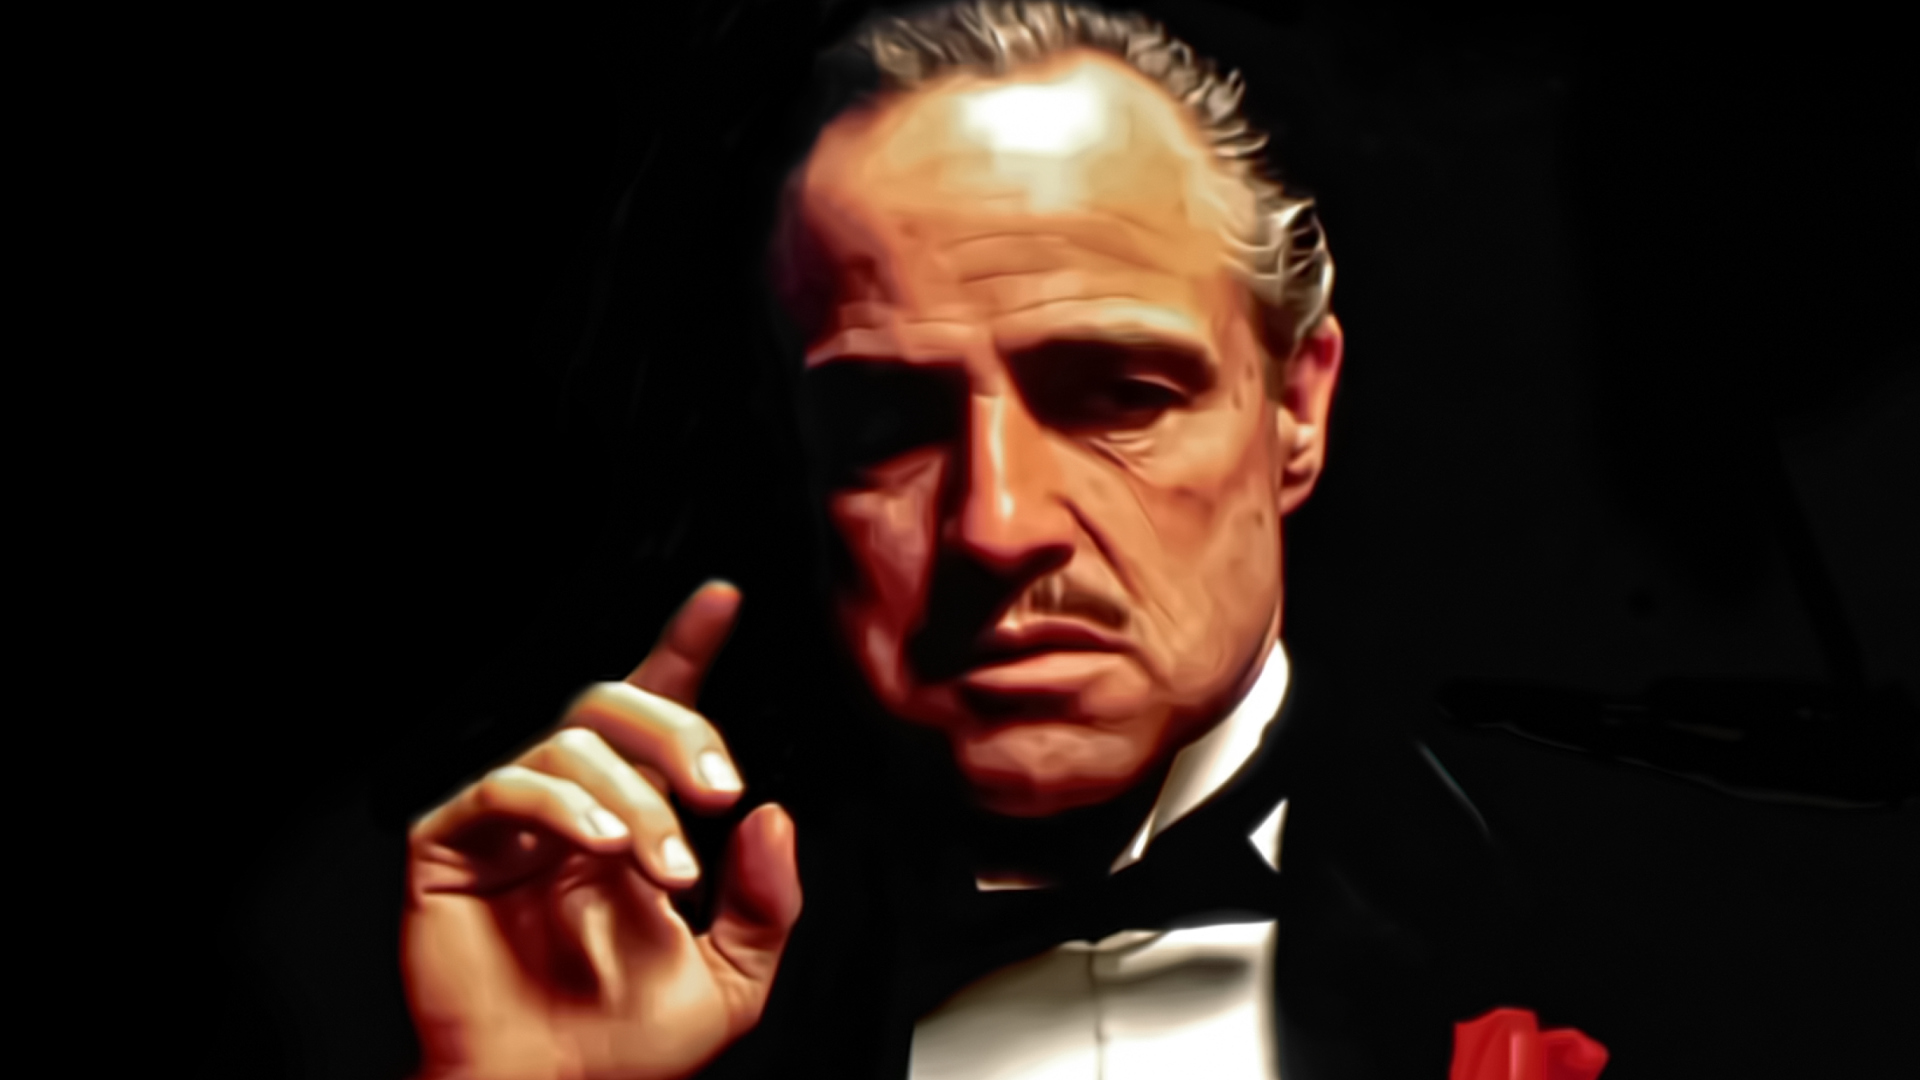 The Godfather - Don Vito Wallpaper for Desktop 1920x1080 ...